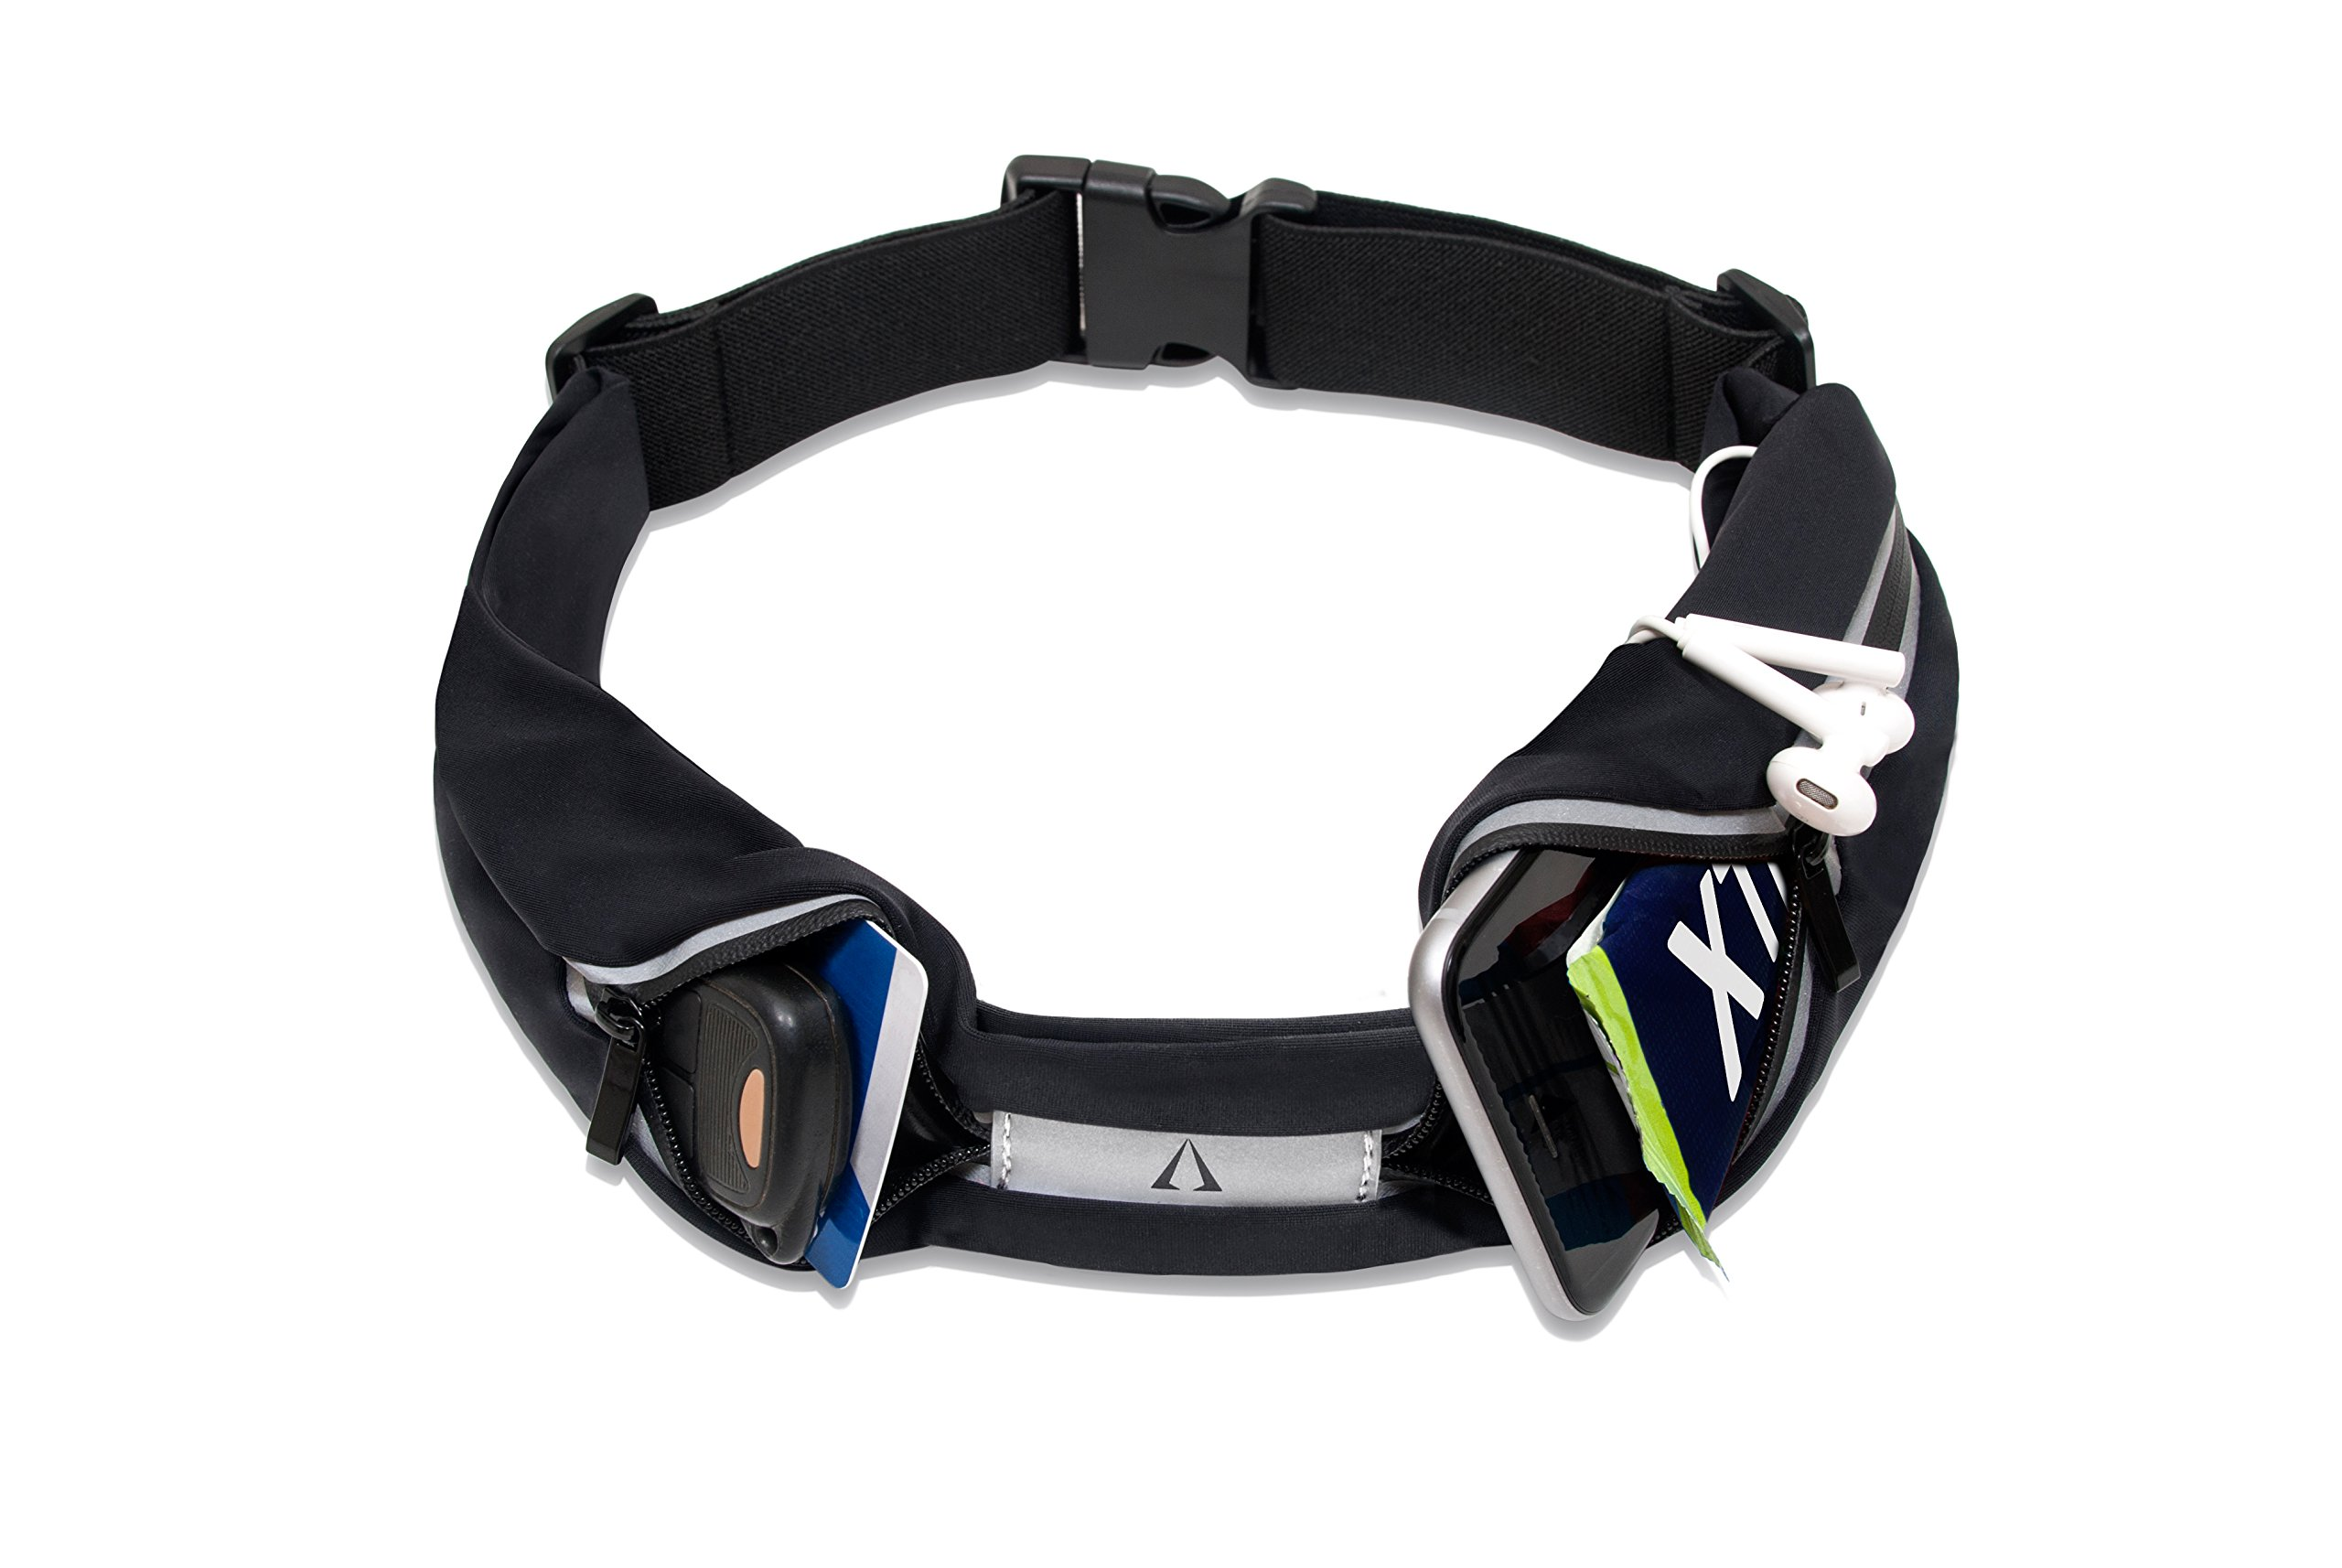 Reflective Running Belt, Water Resistant, Hands Free, Adjustable, Comfortable, Sleek, Light weight, No Bouncing, Holds Any iPhone or Android Device